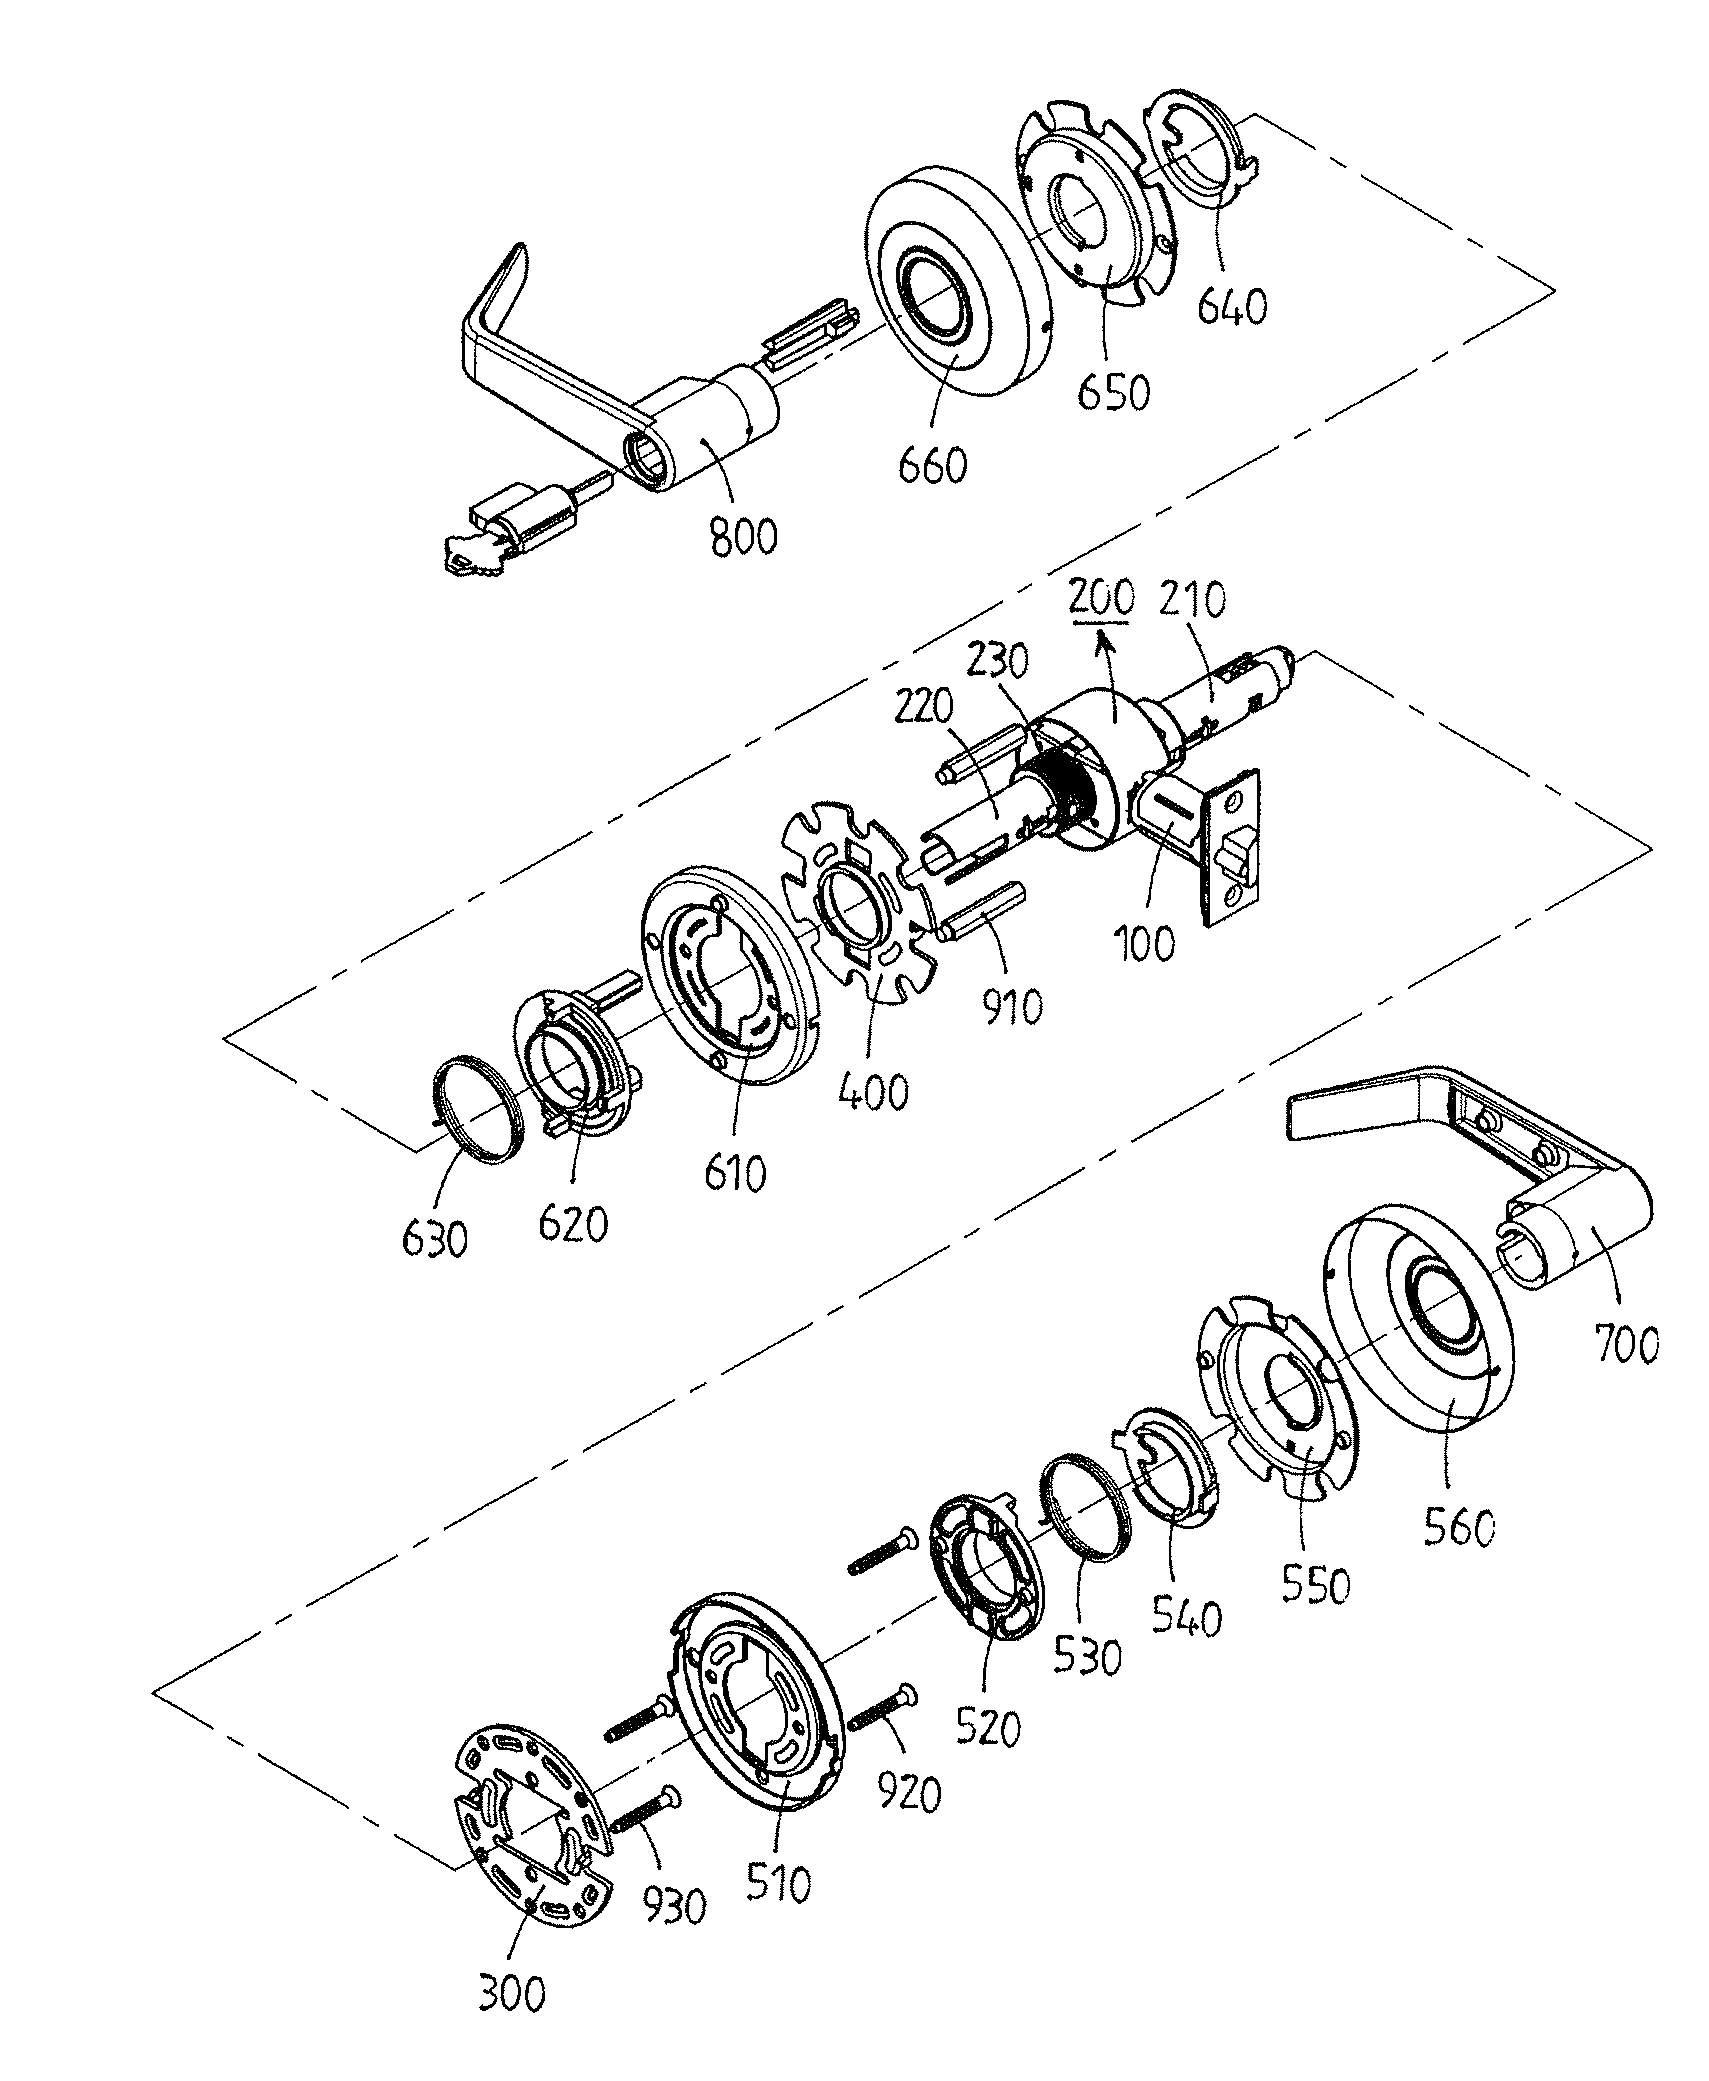 Patent Us8360489 Cylindrical Lever Lock Google Patents